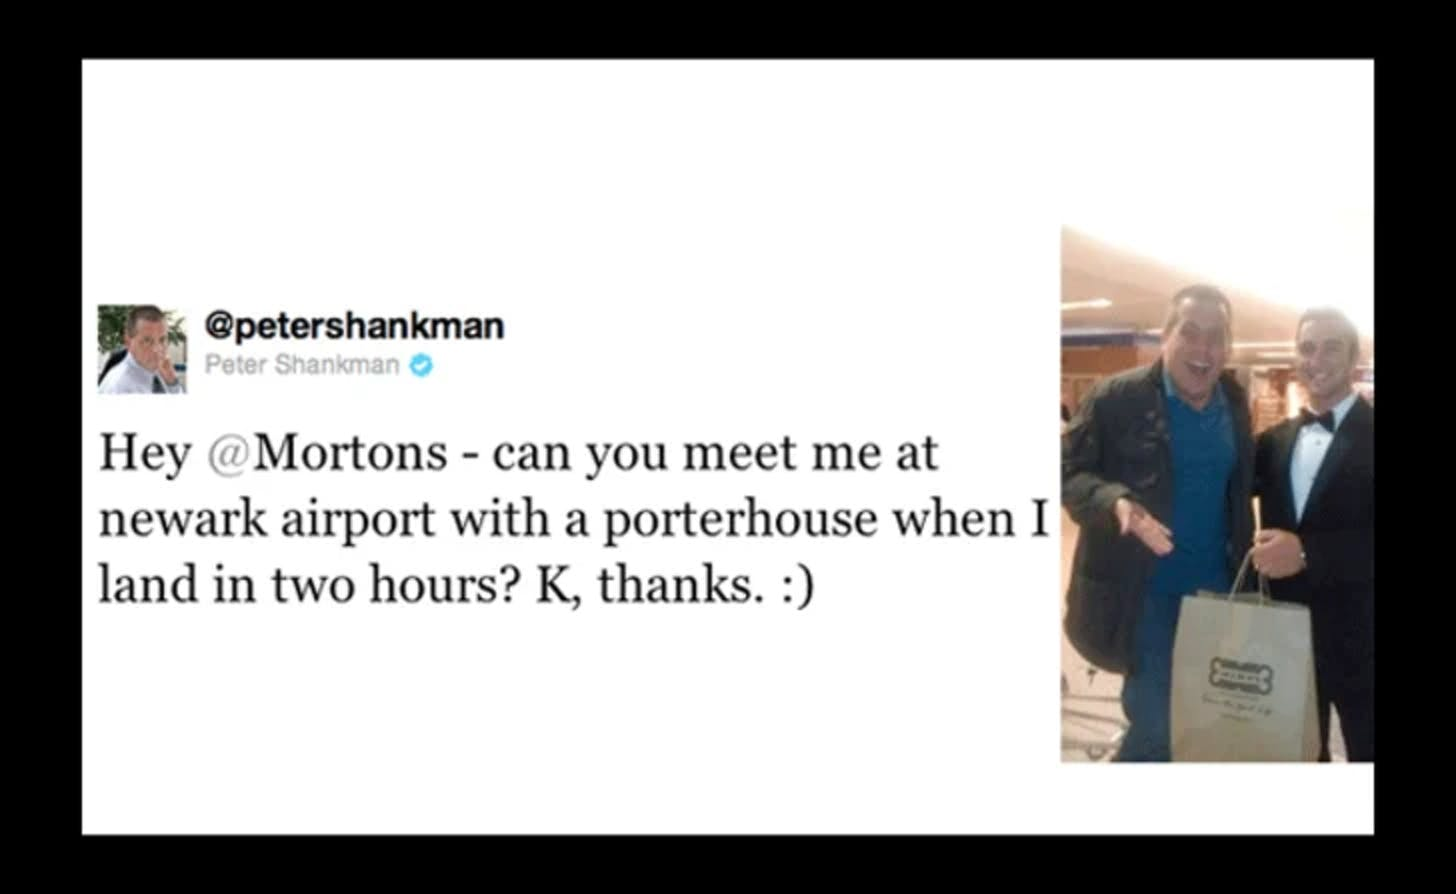 A Mortons customer tweets: Hey Mortons - can you meet me at Newark airport with a proterhouse when I land in two hours? K thanks.